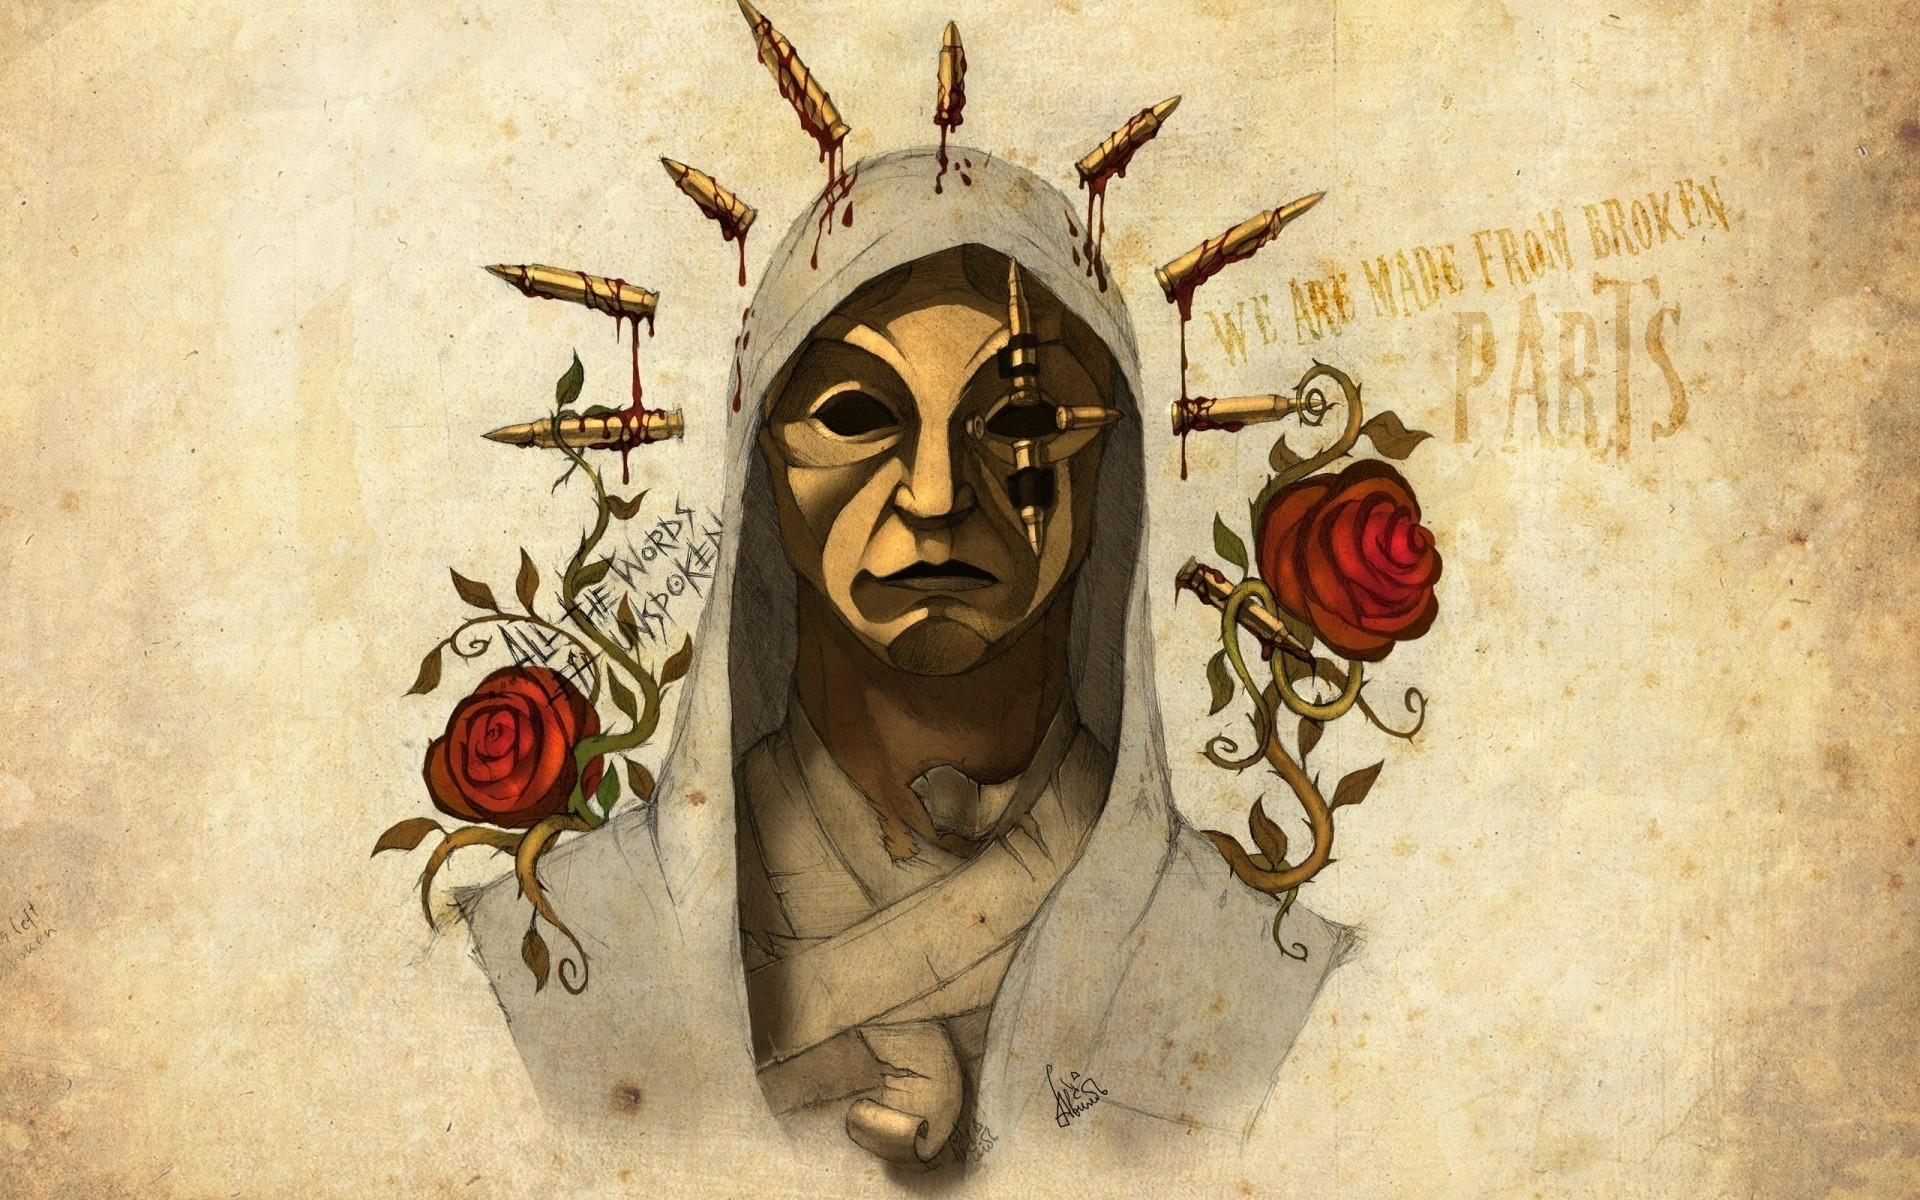 notes from the underground, danny, artwork, hollywood undead